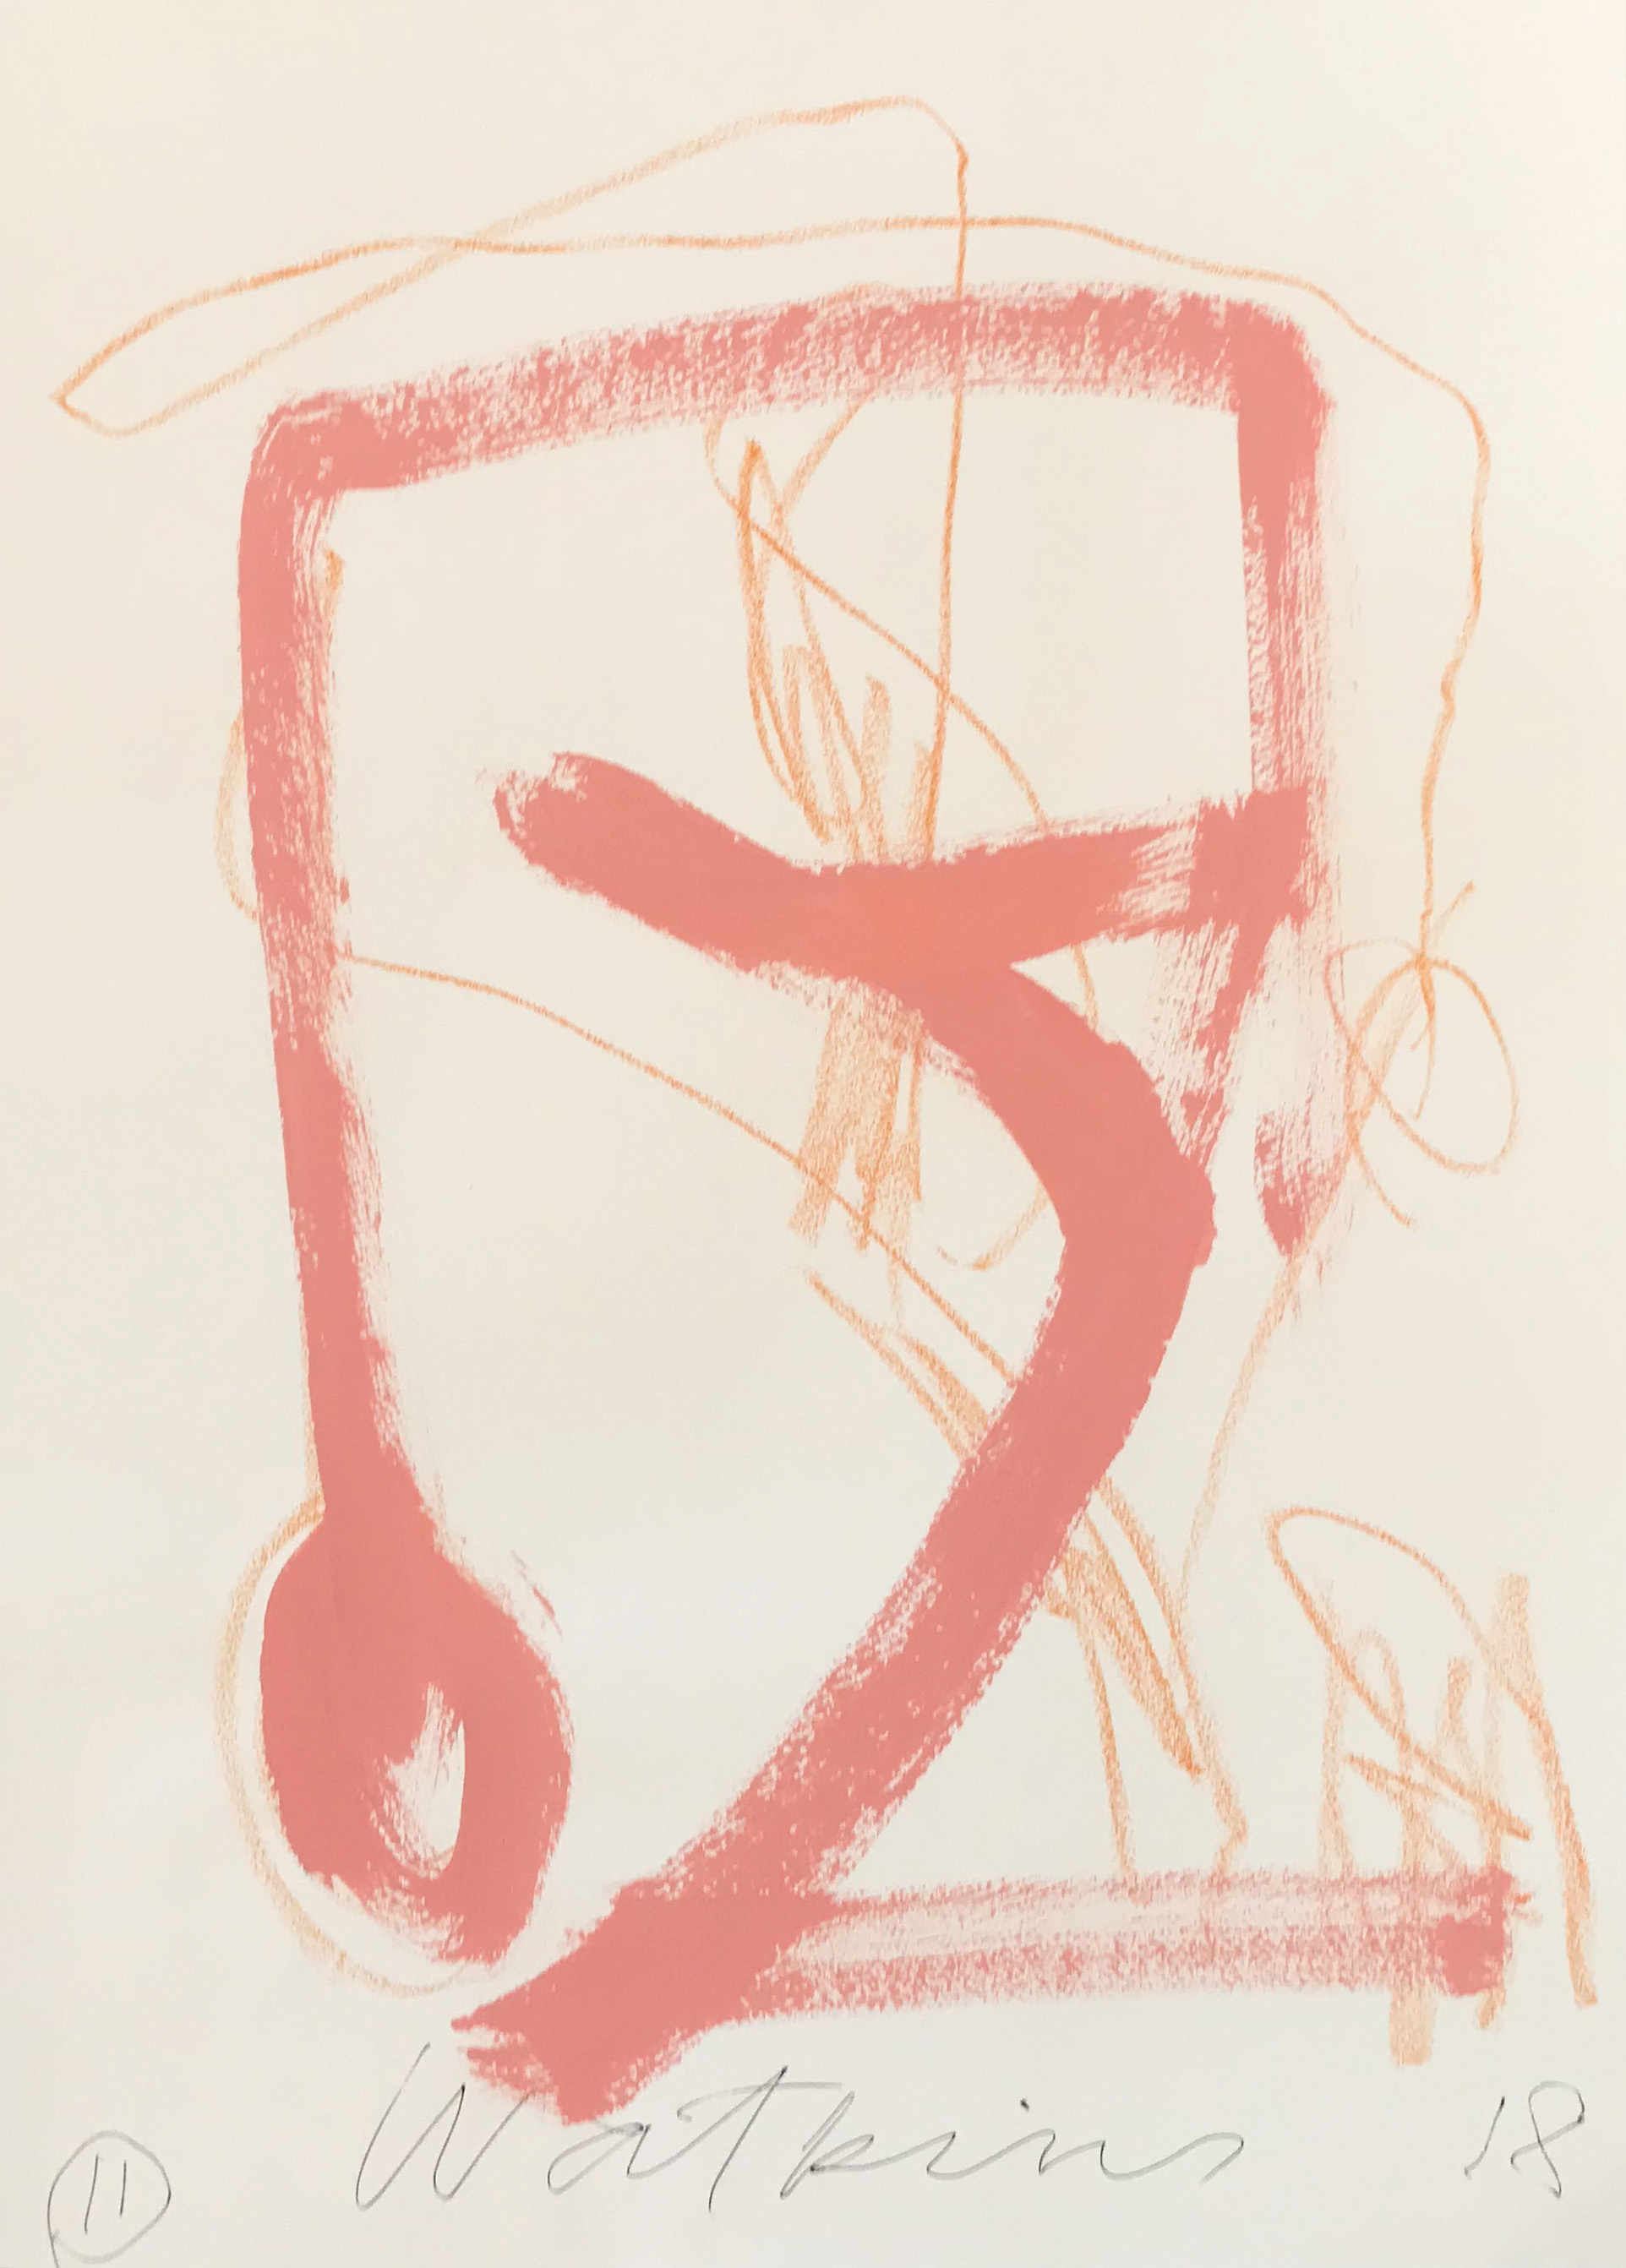 DICK WATKINS  Untitled drawing 11 , 2018 acrylic and pastel on 300gsm paper 76 x 56 cm